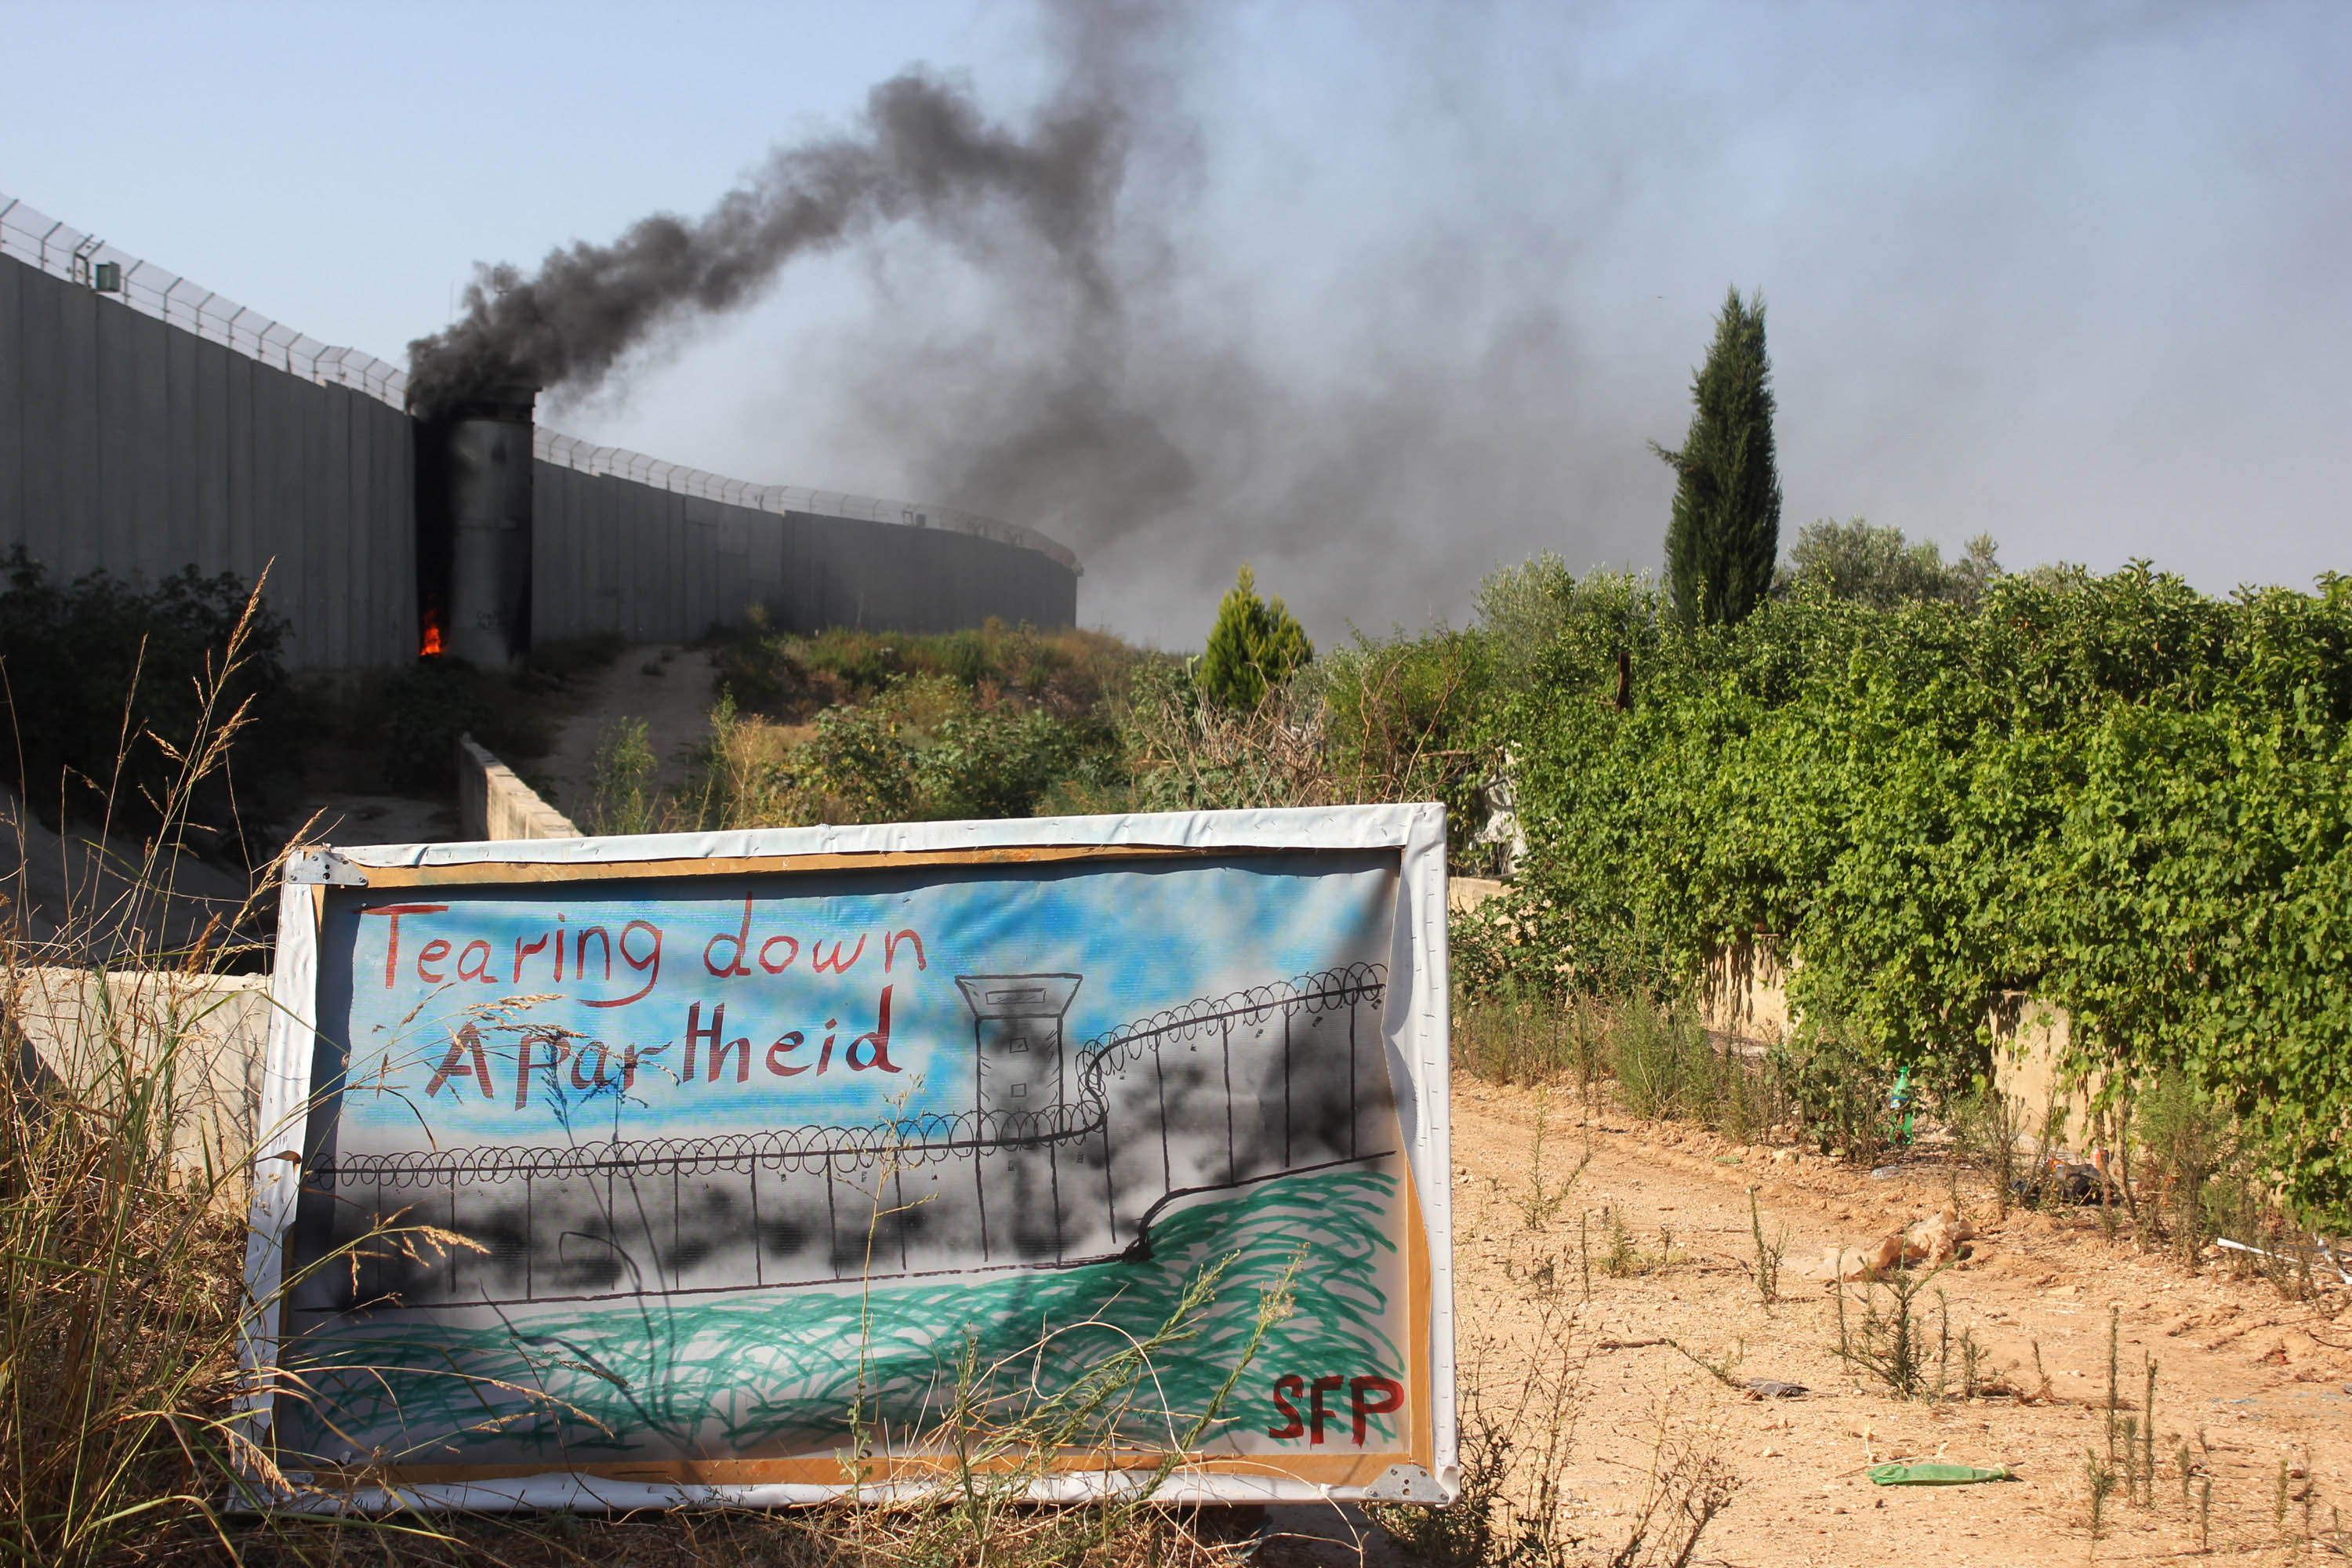 Palestinian and international activists burned a tower of the separation wall during an action on the 10th anniversary of International Court of Justice advisory opinion against the wall, Qalqilya, West Bank, July 9, 2014. (Photo by Ahmad Al-Bazz/GroundTruth)